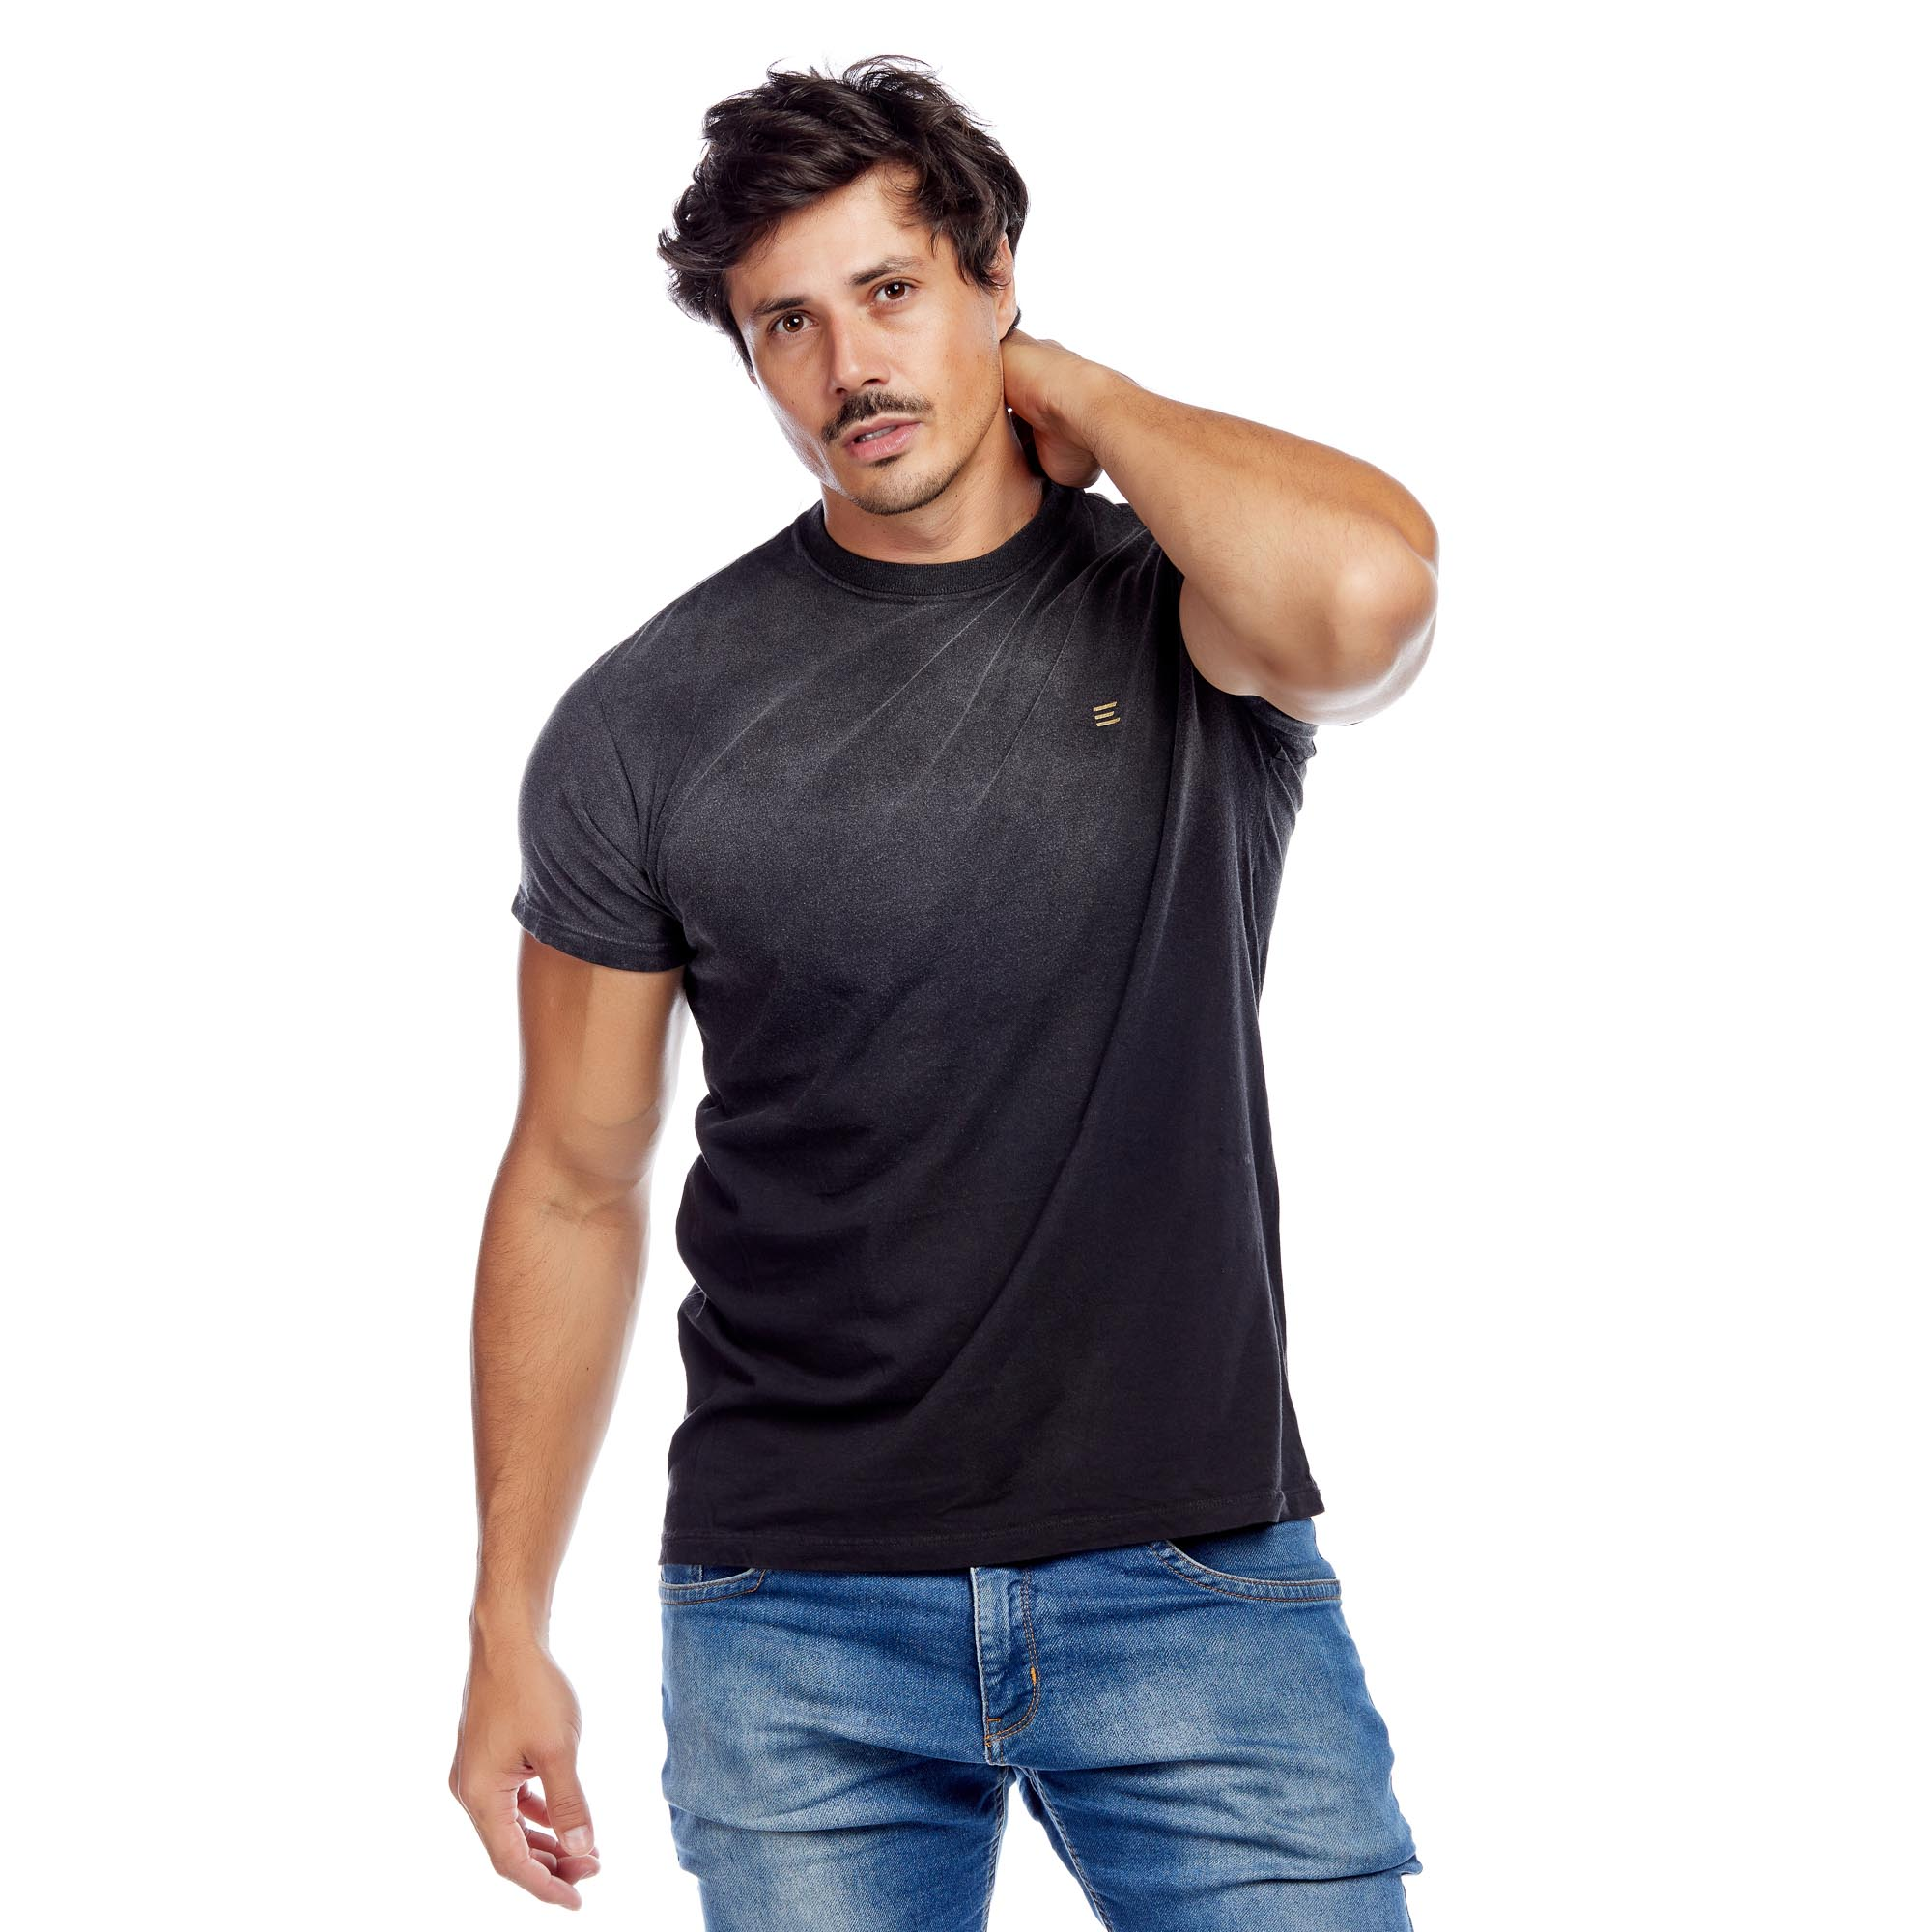 Camiseta Masculina Used Superior Evolvee